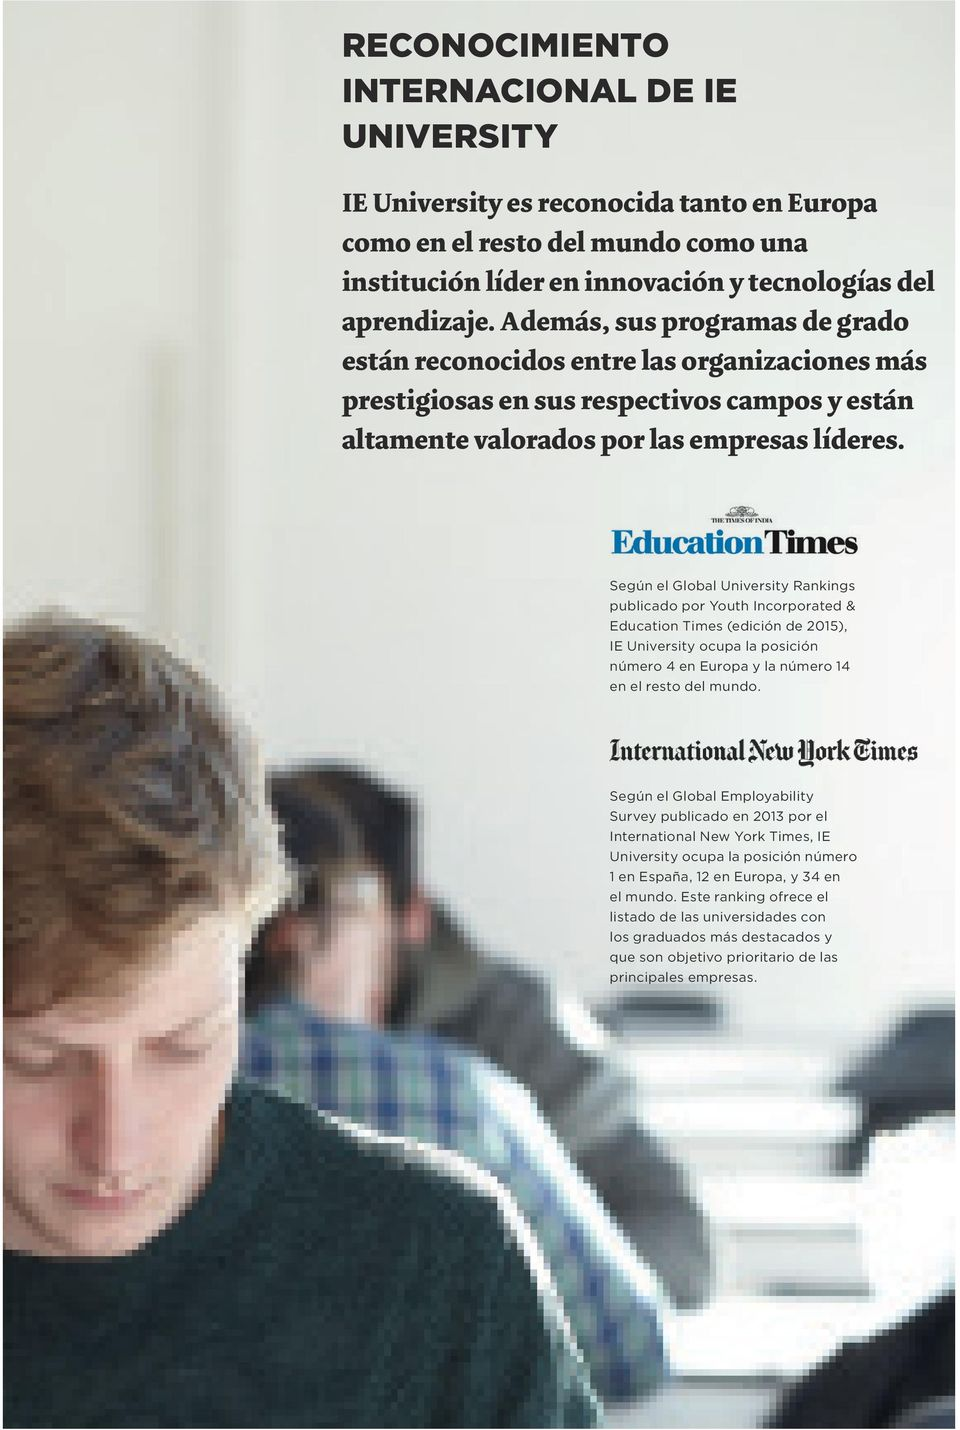 Según el Global University Rankings publicado por Youth Incorporated & Education Times (edición de 2015), IE University ocupa la posición número 4 en Europa y la número 14 en el resto del mundo.